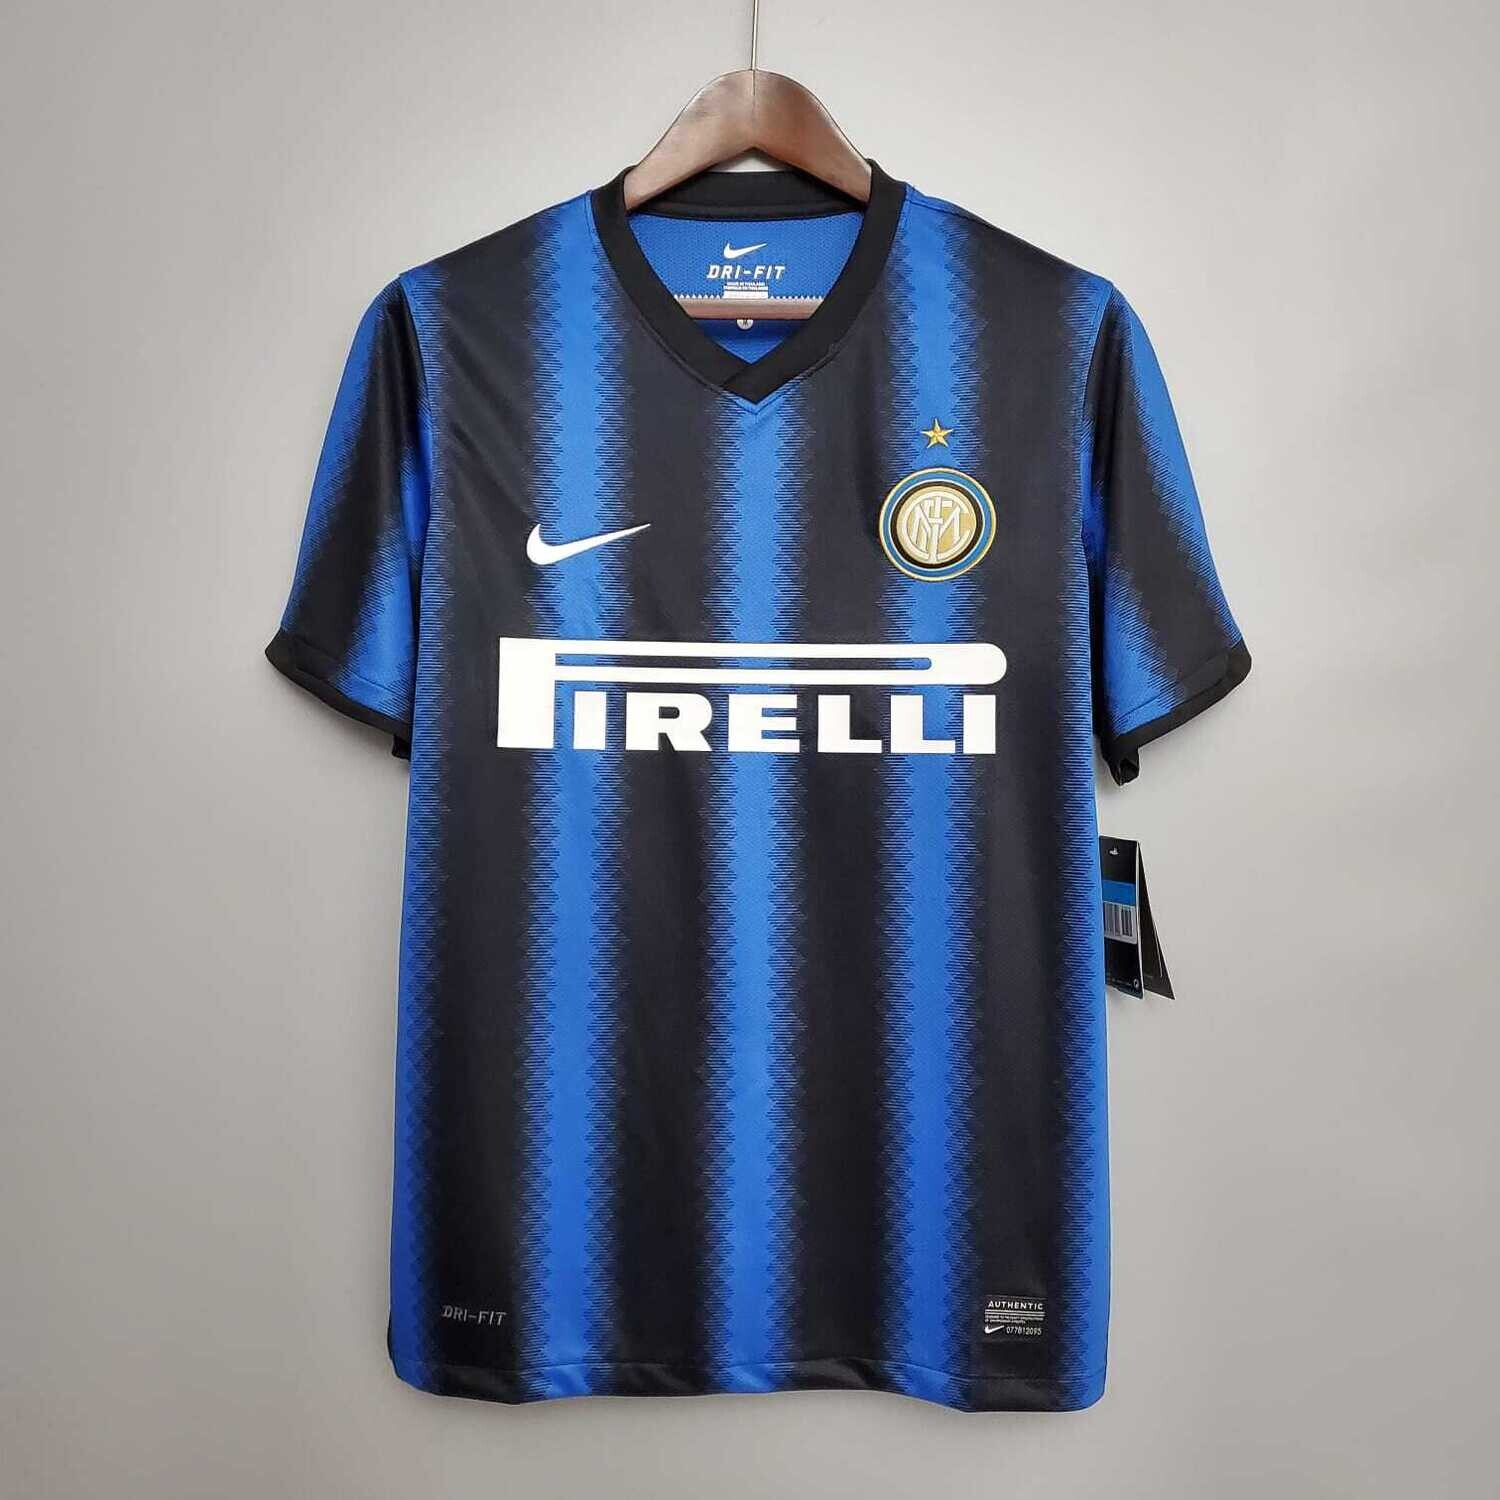 Inter Milan 2010-11 Retro Home Jersey [Pre-paid Only]